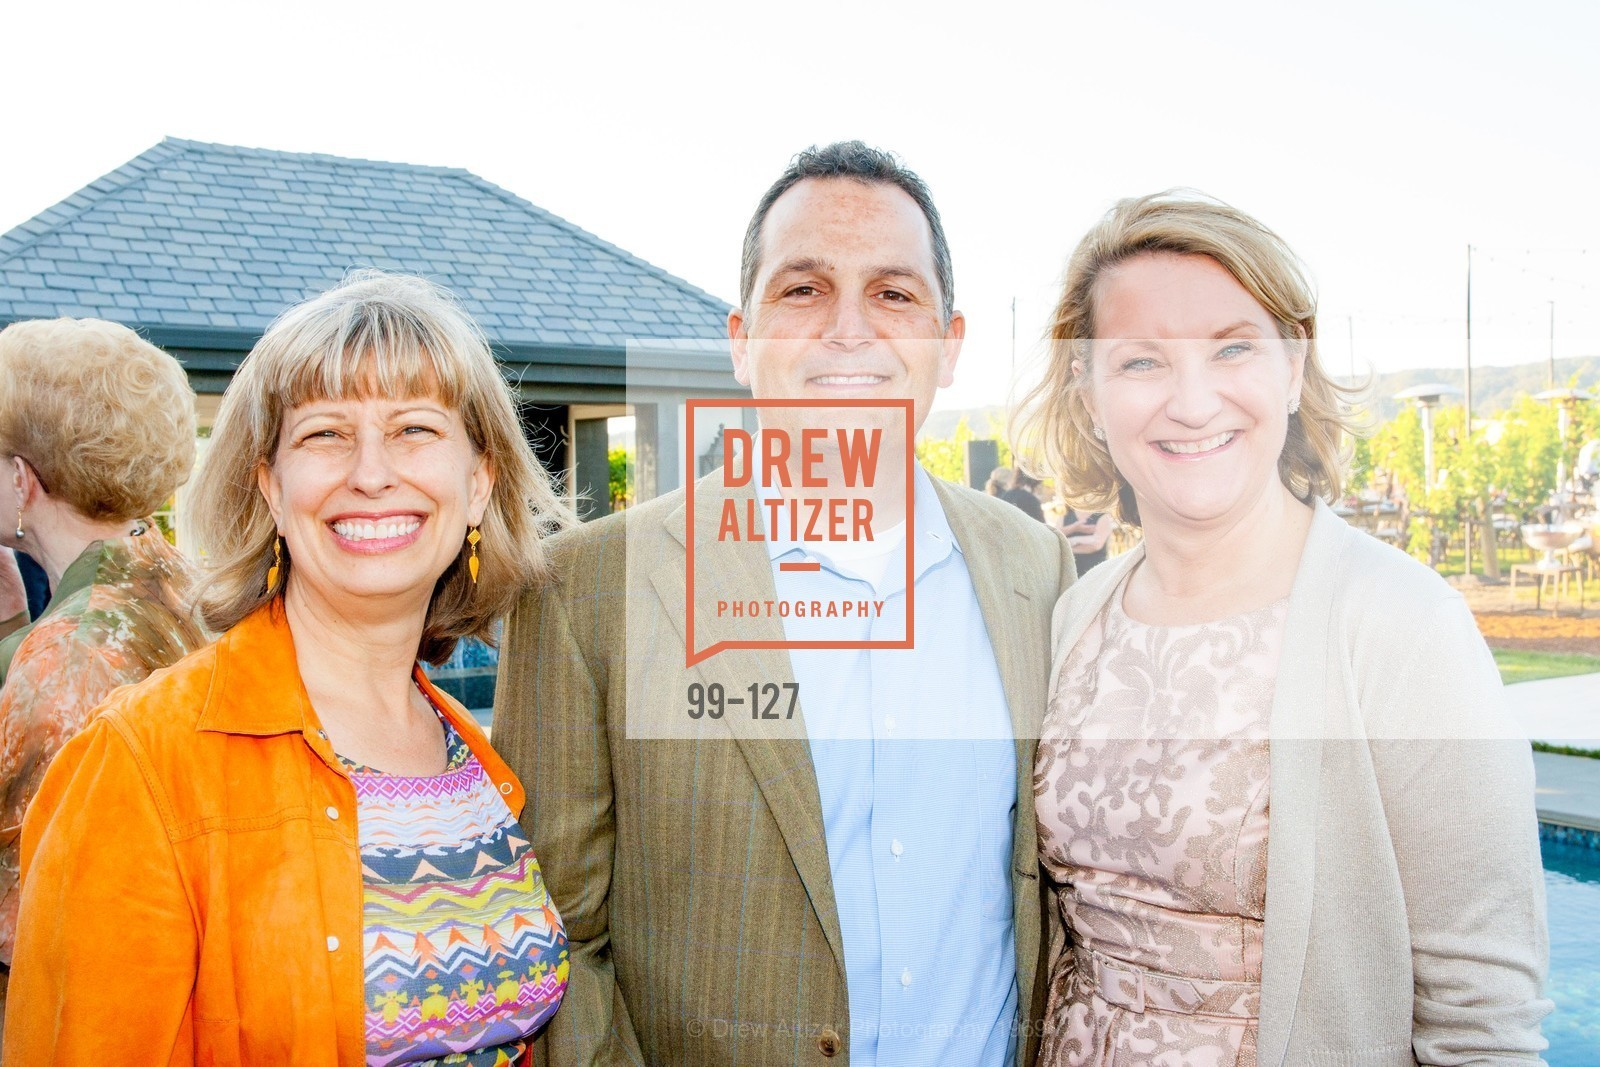 Linda Dujmovich, Craig Stevenson, Ann von Germeten, An Evening in the Vineyard hosted by JACK CALHOUN & TRENT NORRIS, Jack Calhoun & Trent Norris Vineyard. 3393 Dry Creek Road, Healdsburg CA 95448, May 22nd, 2015,Drew Altizer, Drew Altizer Photography, full-service agency, private events, San Francisco photographer, photographer california